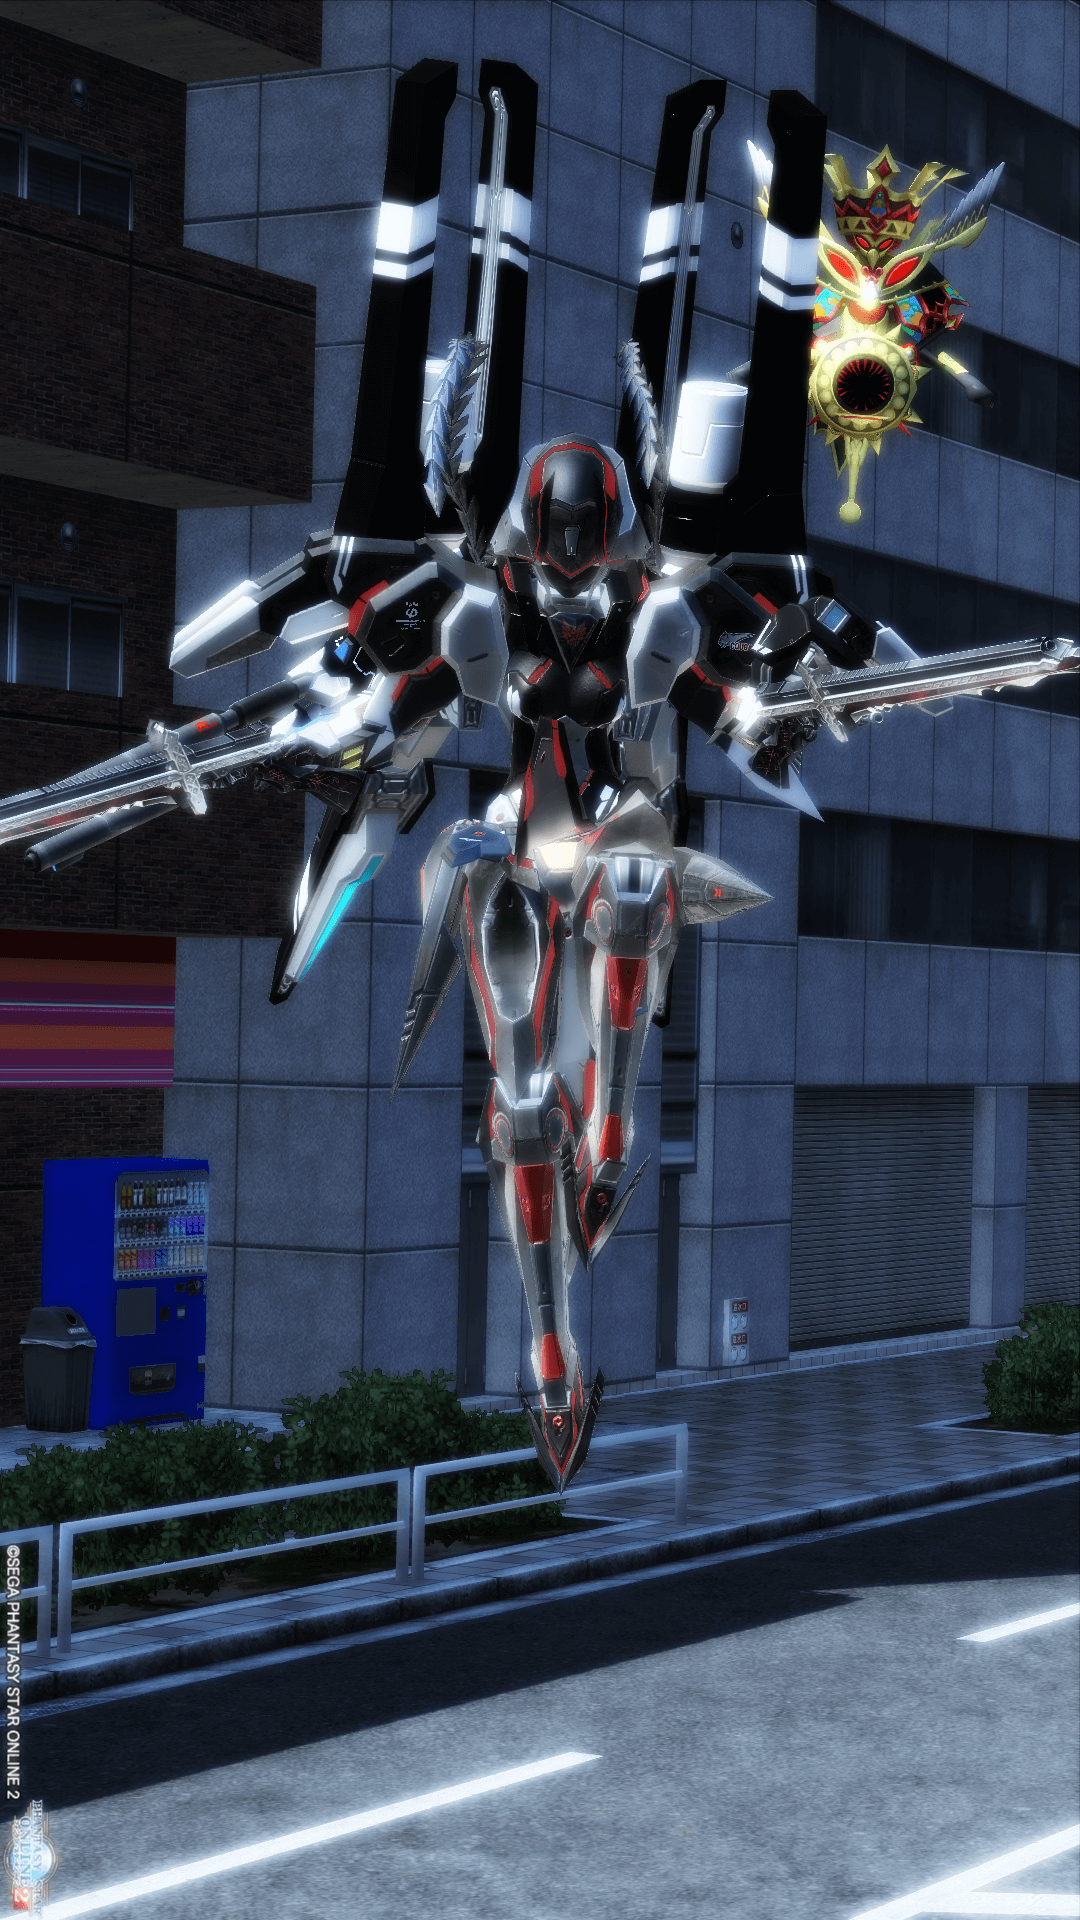 pso20160205_035310_011.png